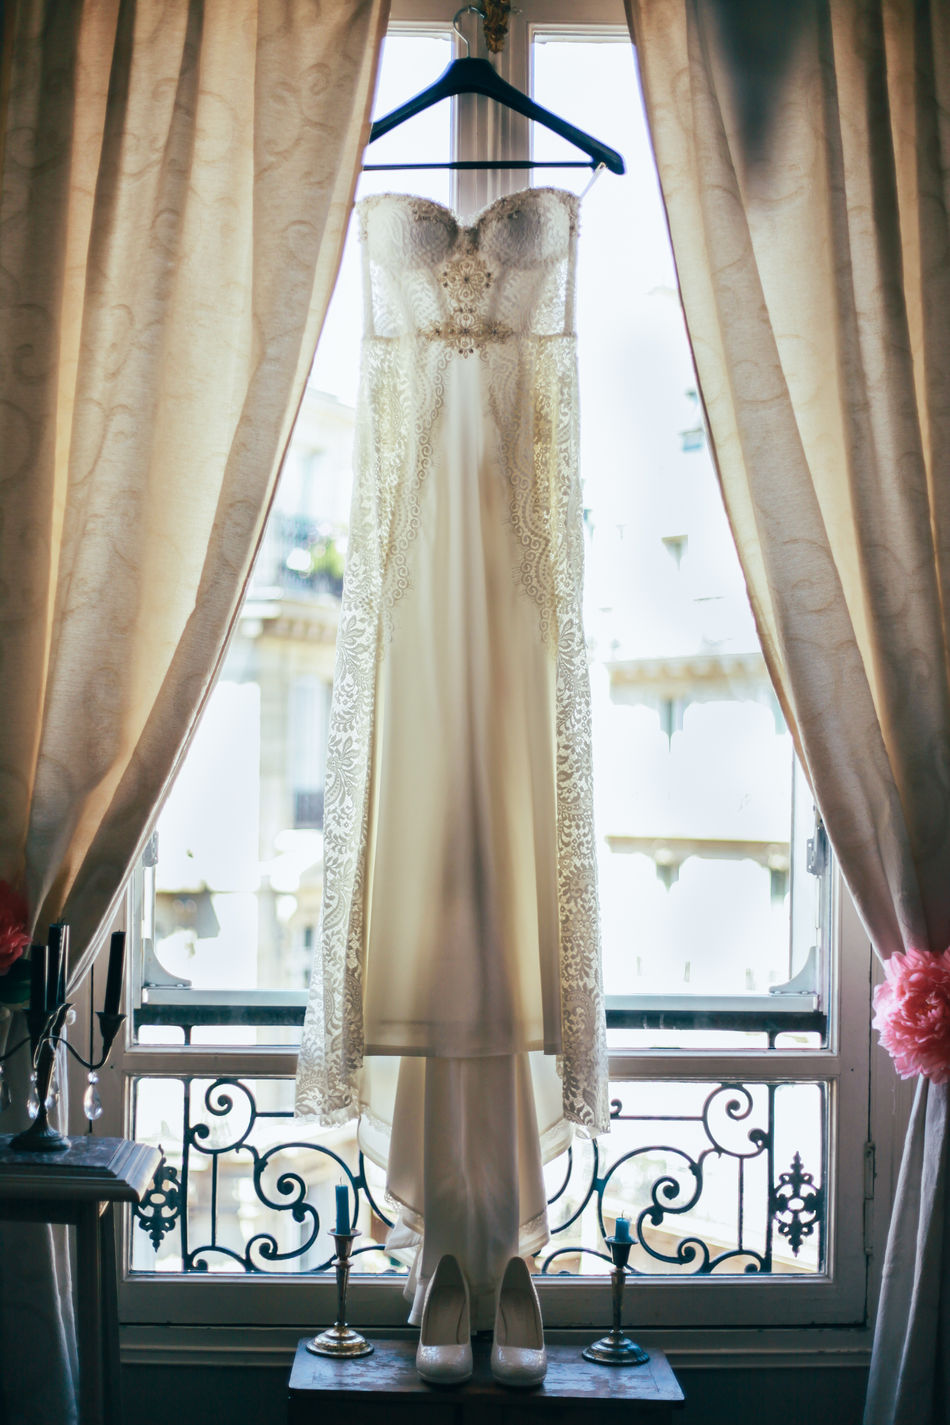 Curtain Cute Decorations Details Drapes  France French Indoors  Indoors  Luxury Morning No People Paris Preparations Tender Wedding Wedding Day Wedding Dress Wedding Photography Wedding Shoes Window